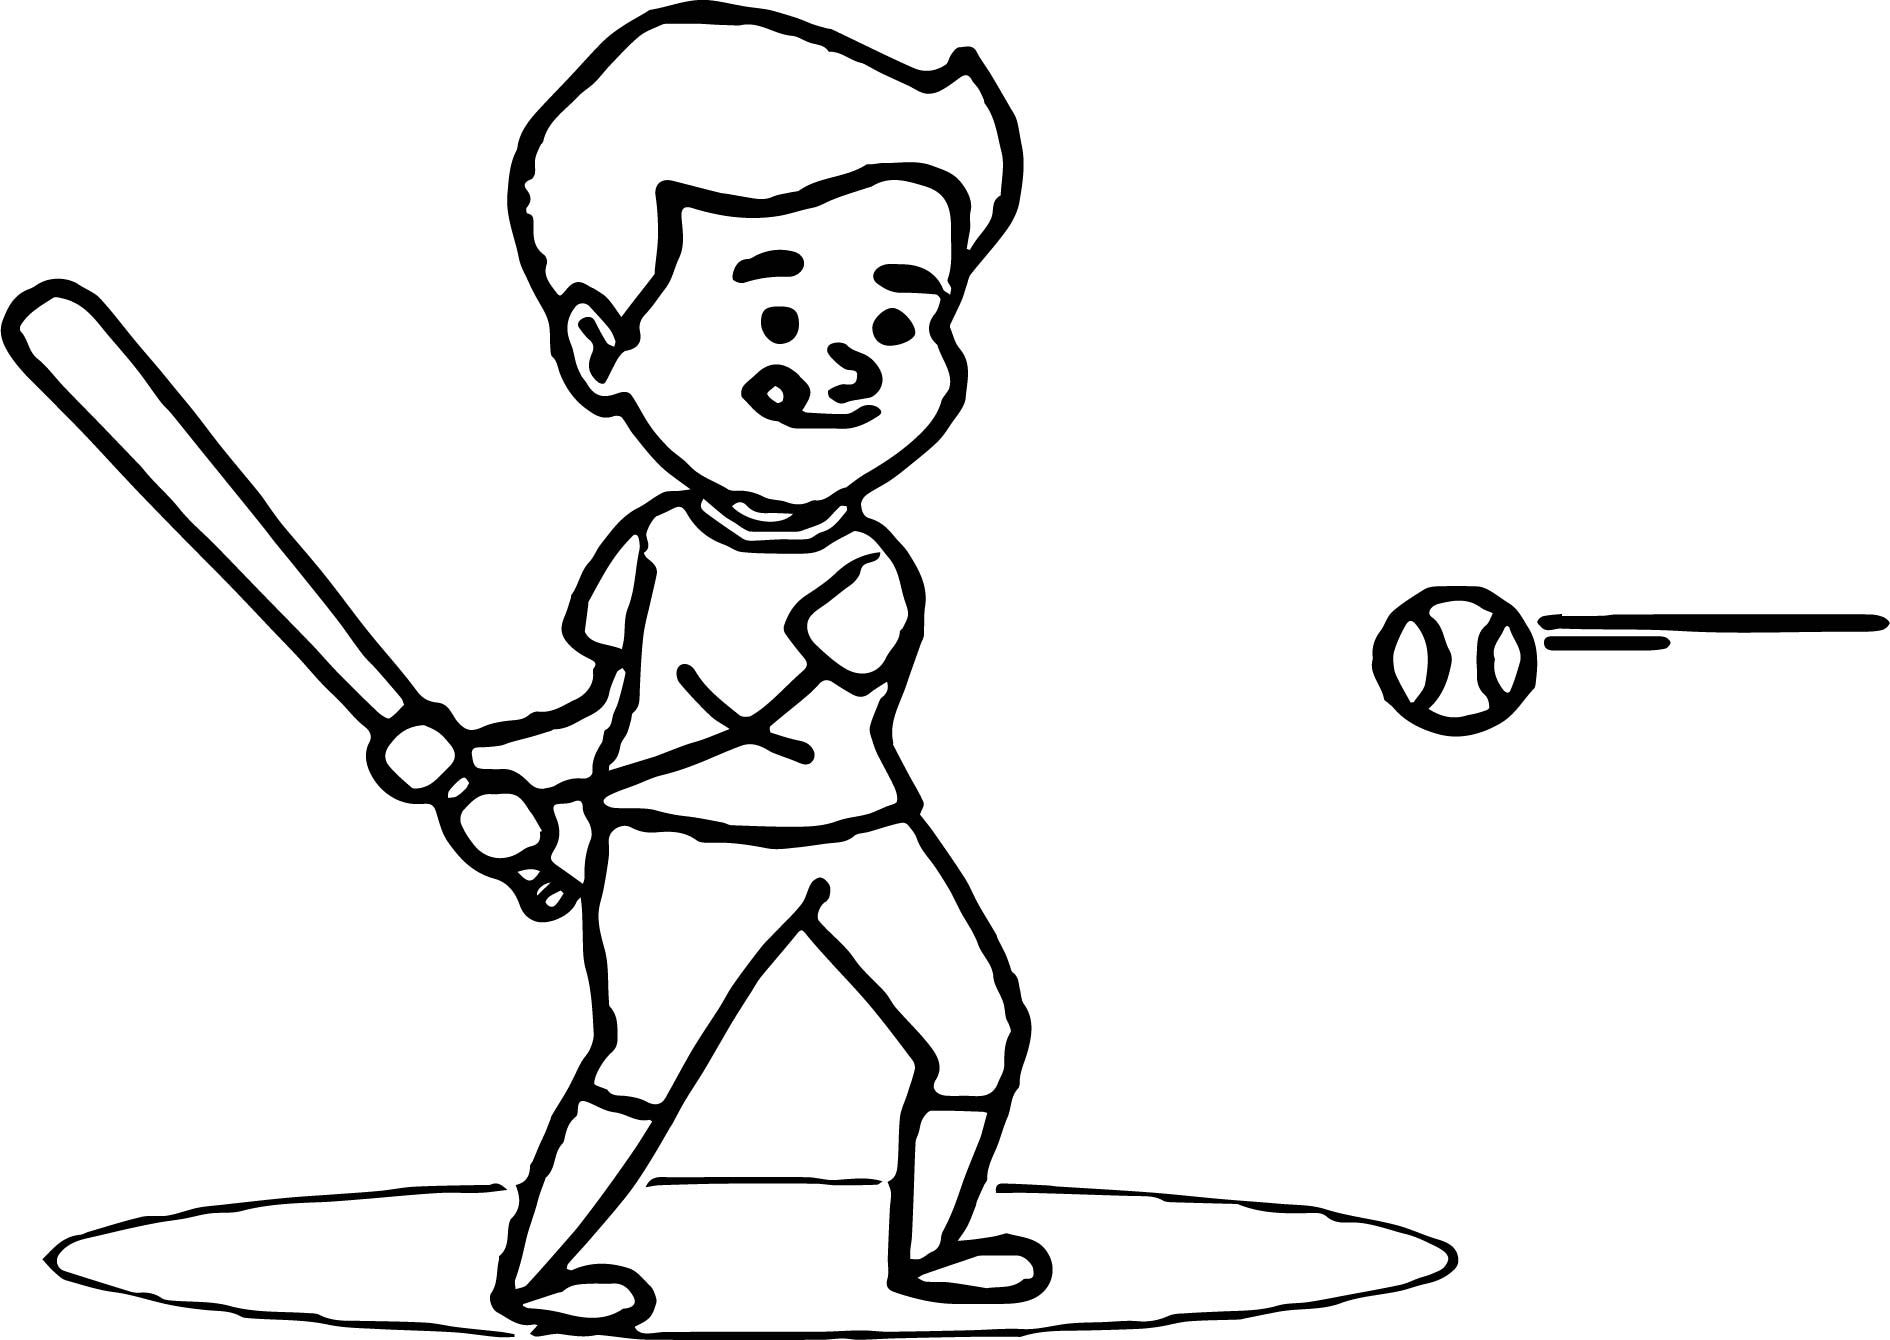 Cool Little League Player Hitting Baseball Coloring Page